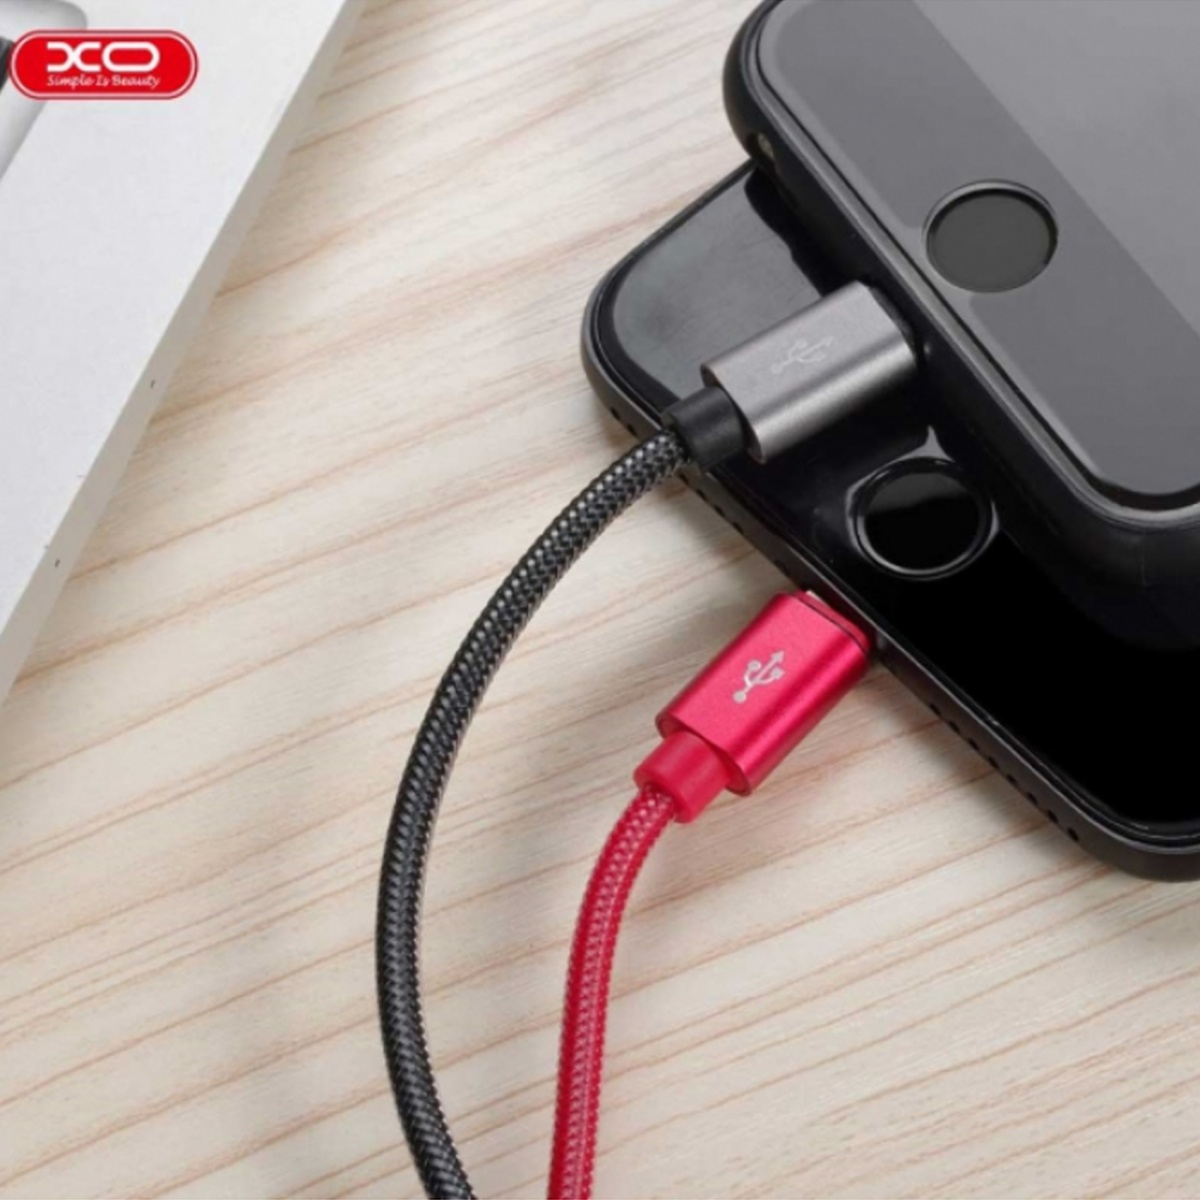 XO NB31 Type C USB Elbow Alloy 2.4A Cable - Red